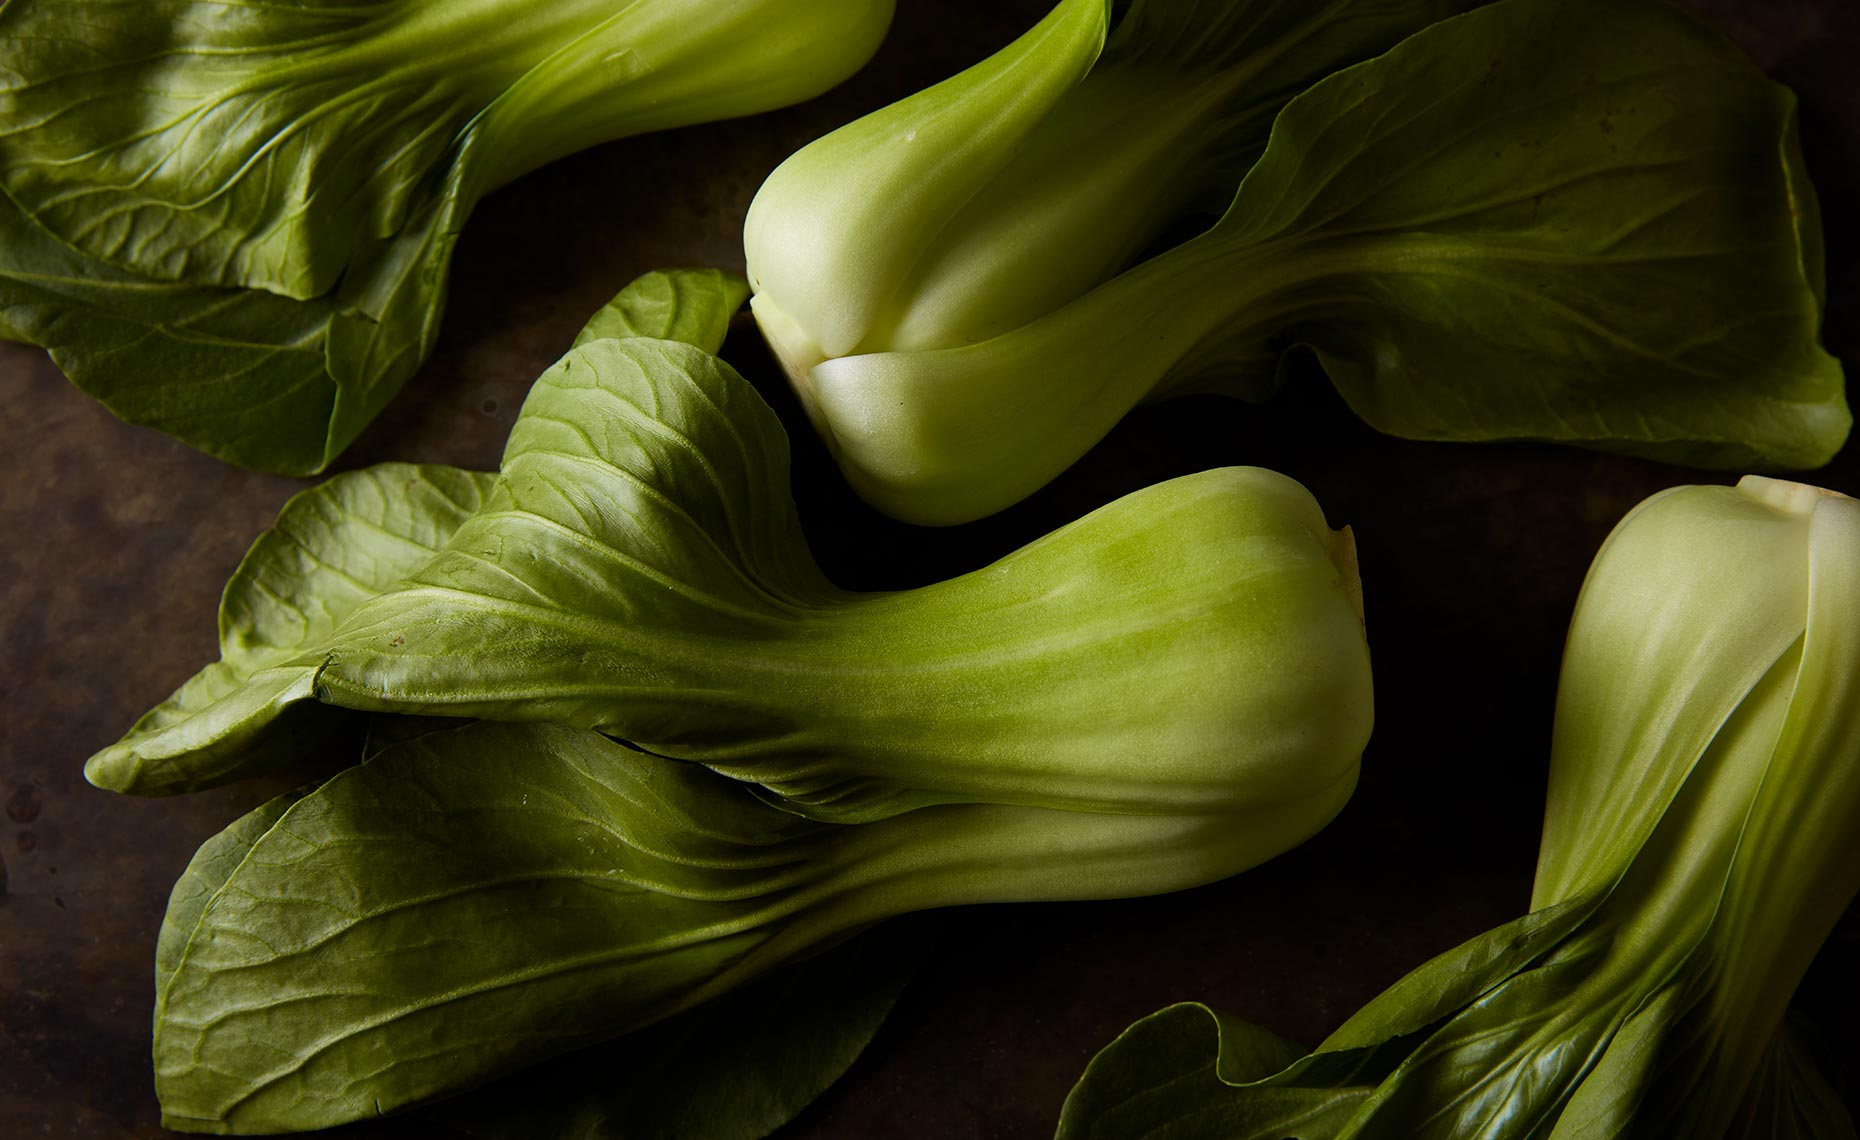 appetizers-fruits-vegetables-photographers-bok-choy-25